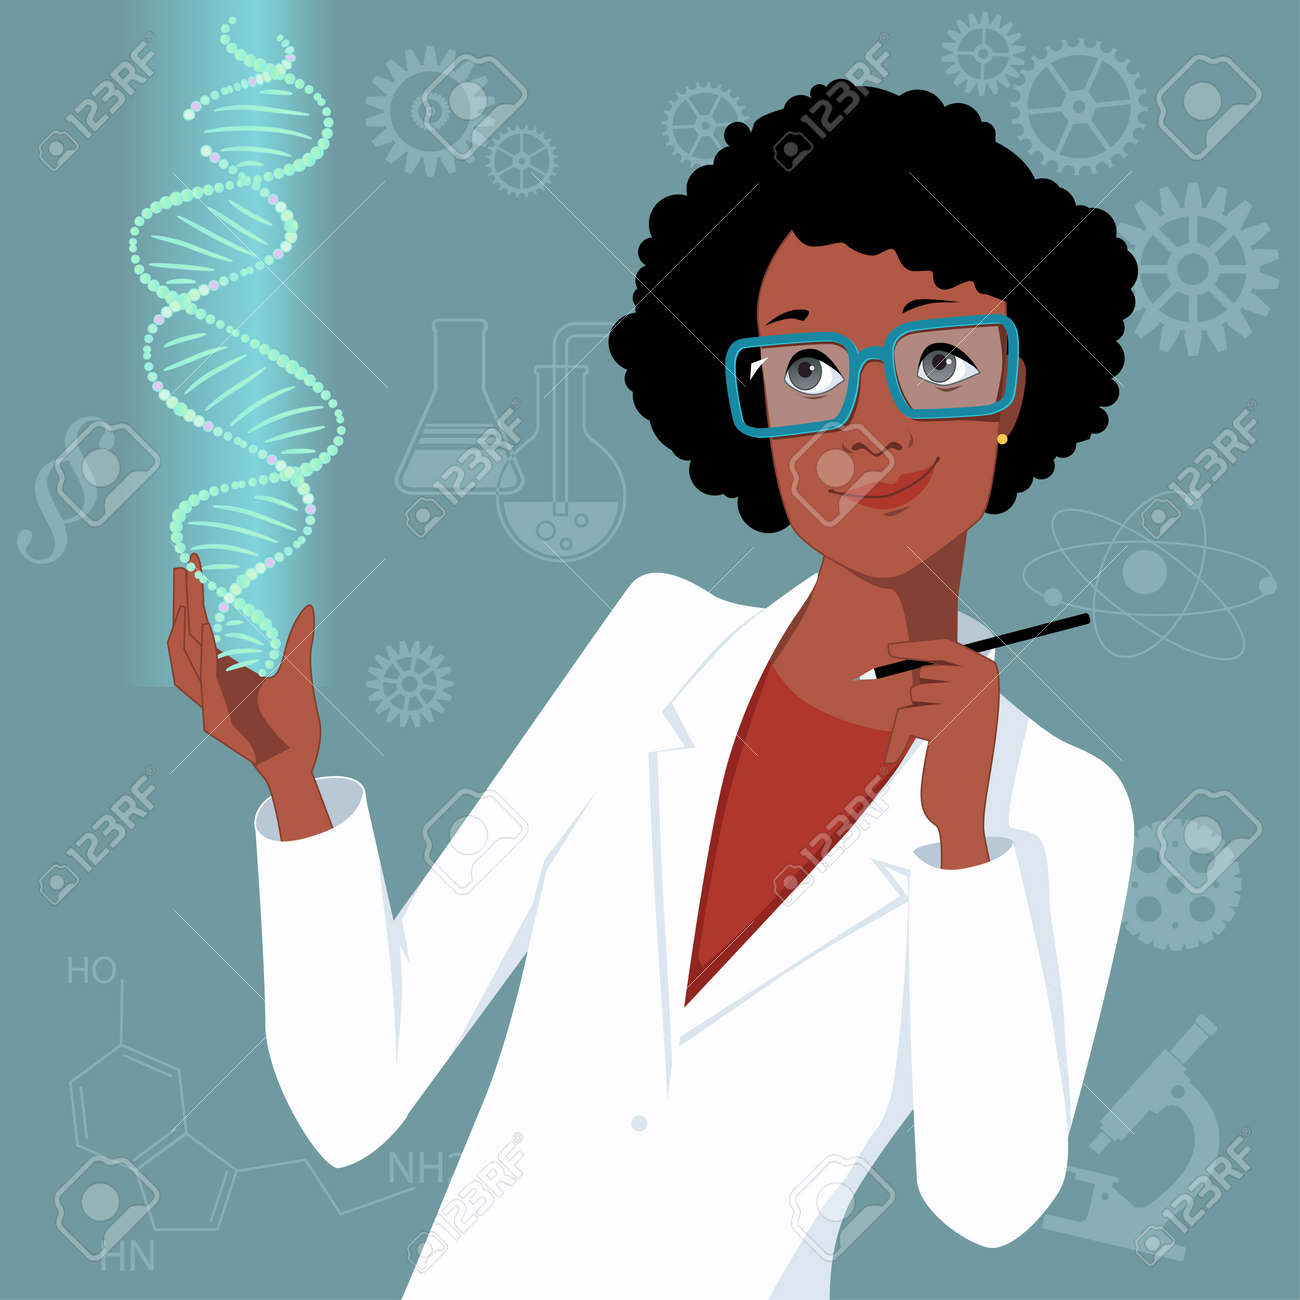 A woman that working her magic in science